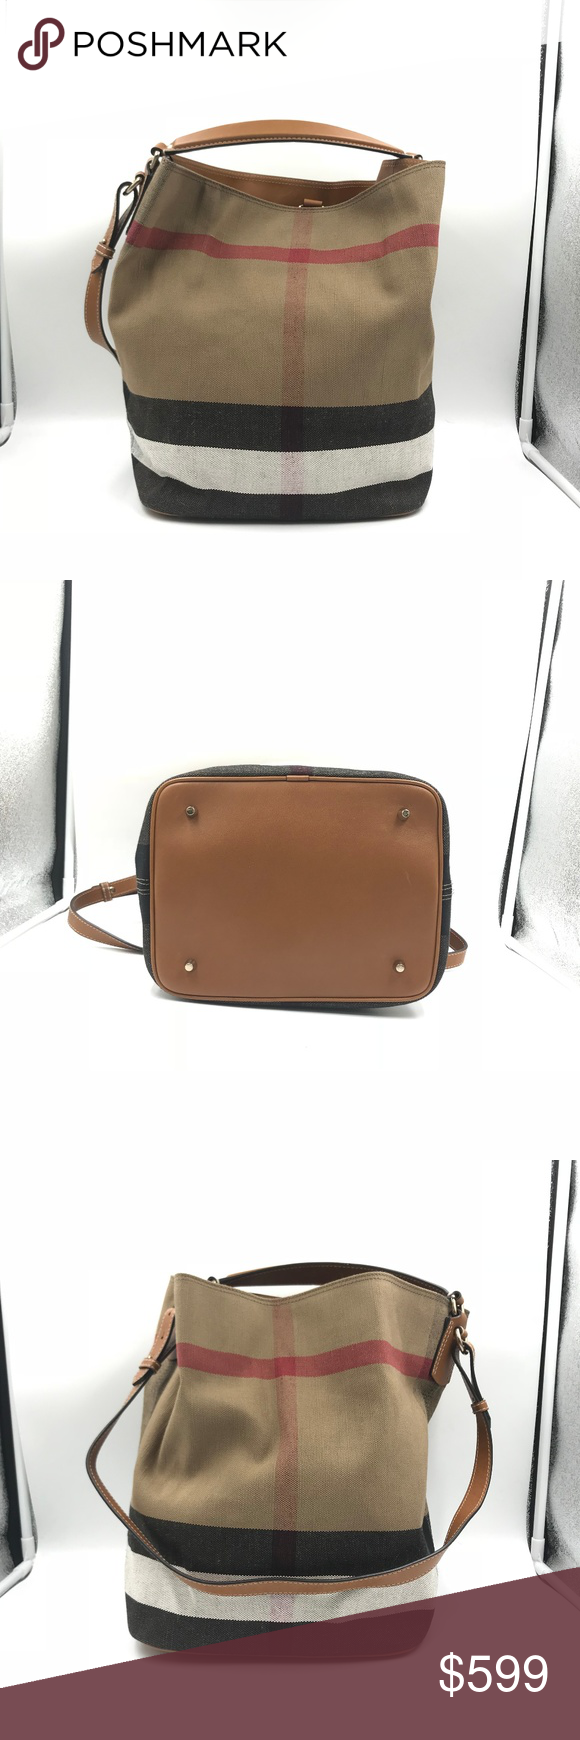 94857877db9 Burberry Medium Ashby Saddle Brown Hobo A Burberry tote crafted in canvas  check with leather trim